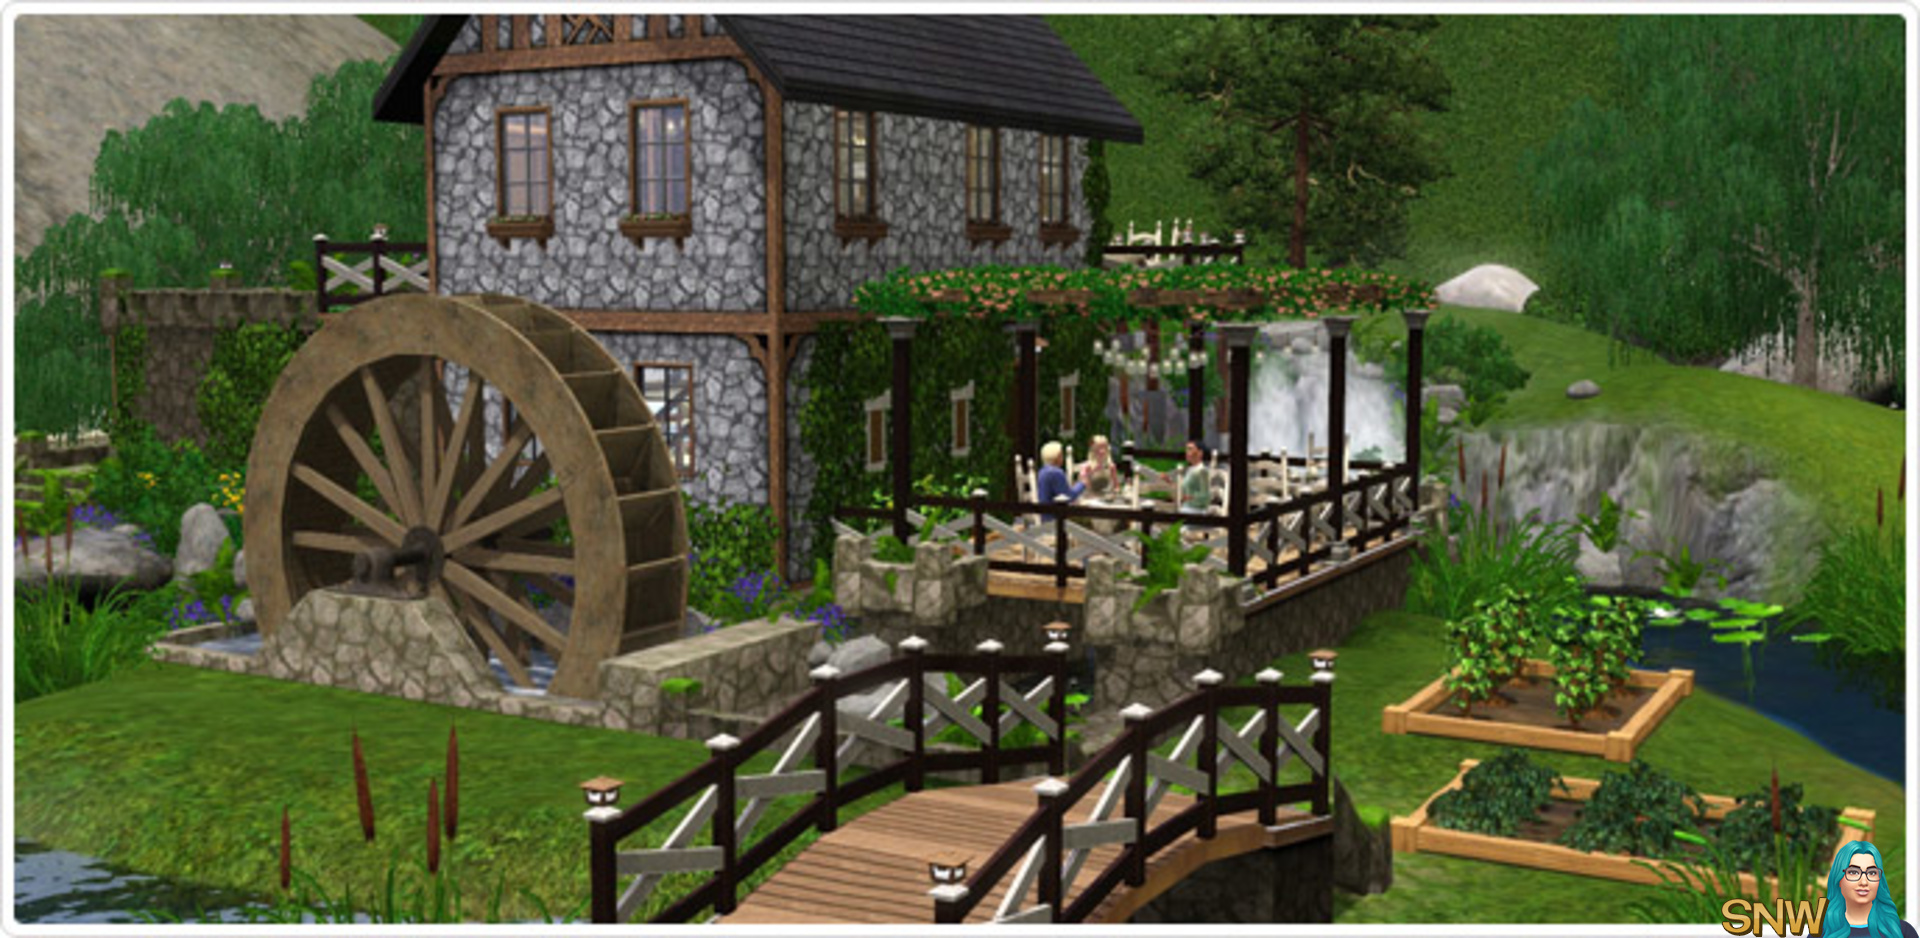 AznSensei's Sims 3 Store Blog: Brunch at the Old Mill